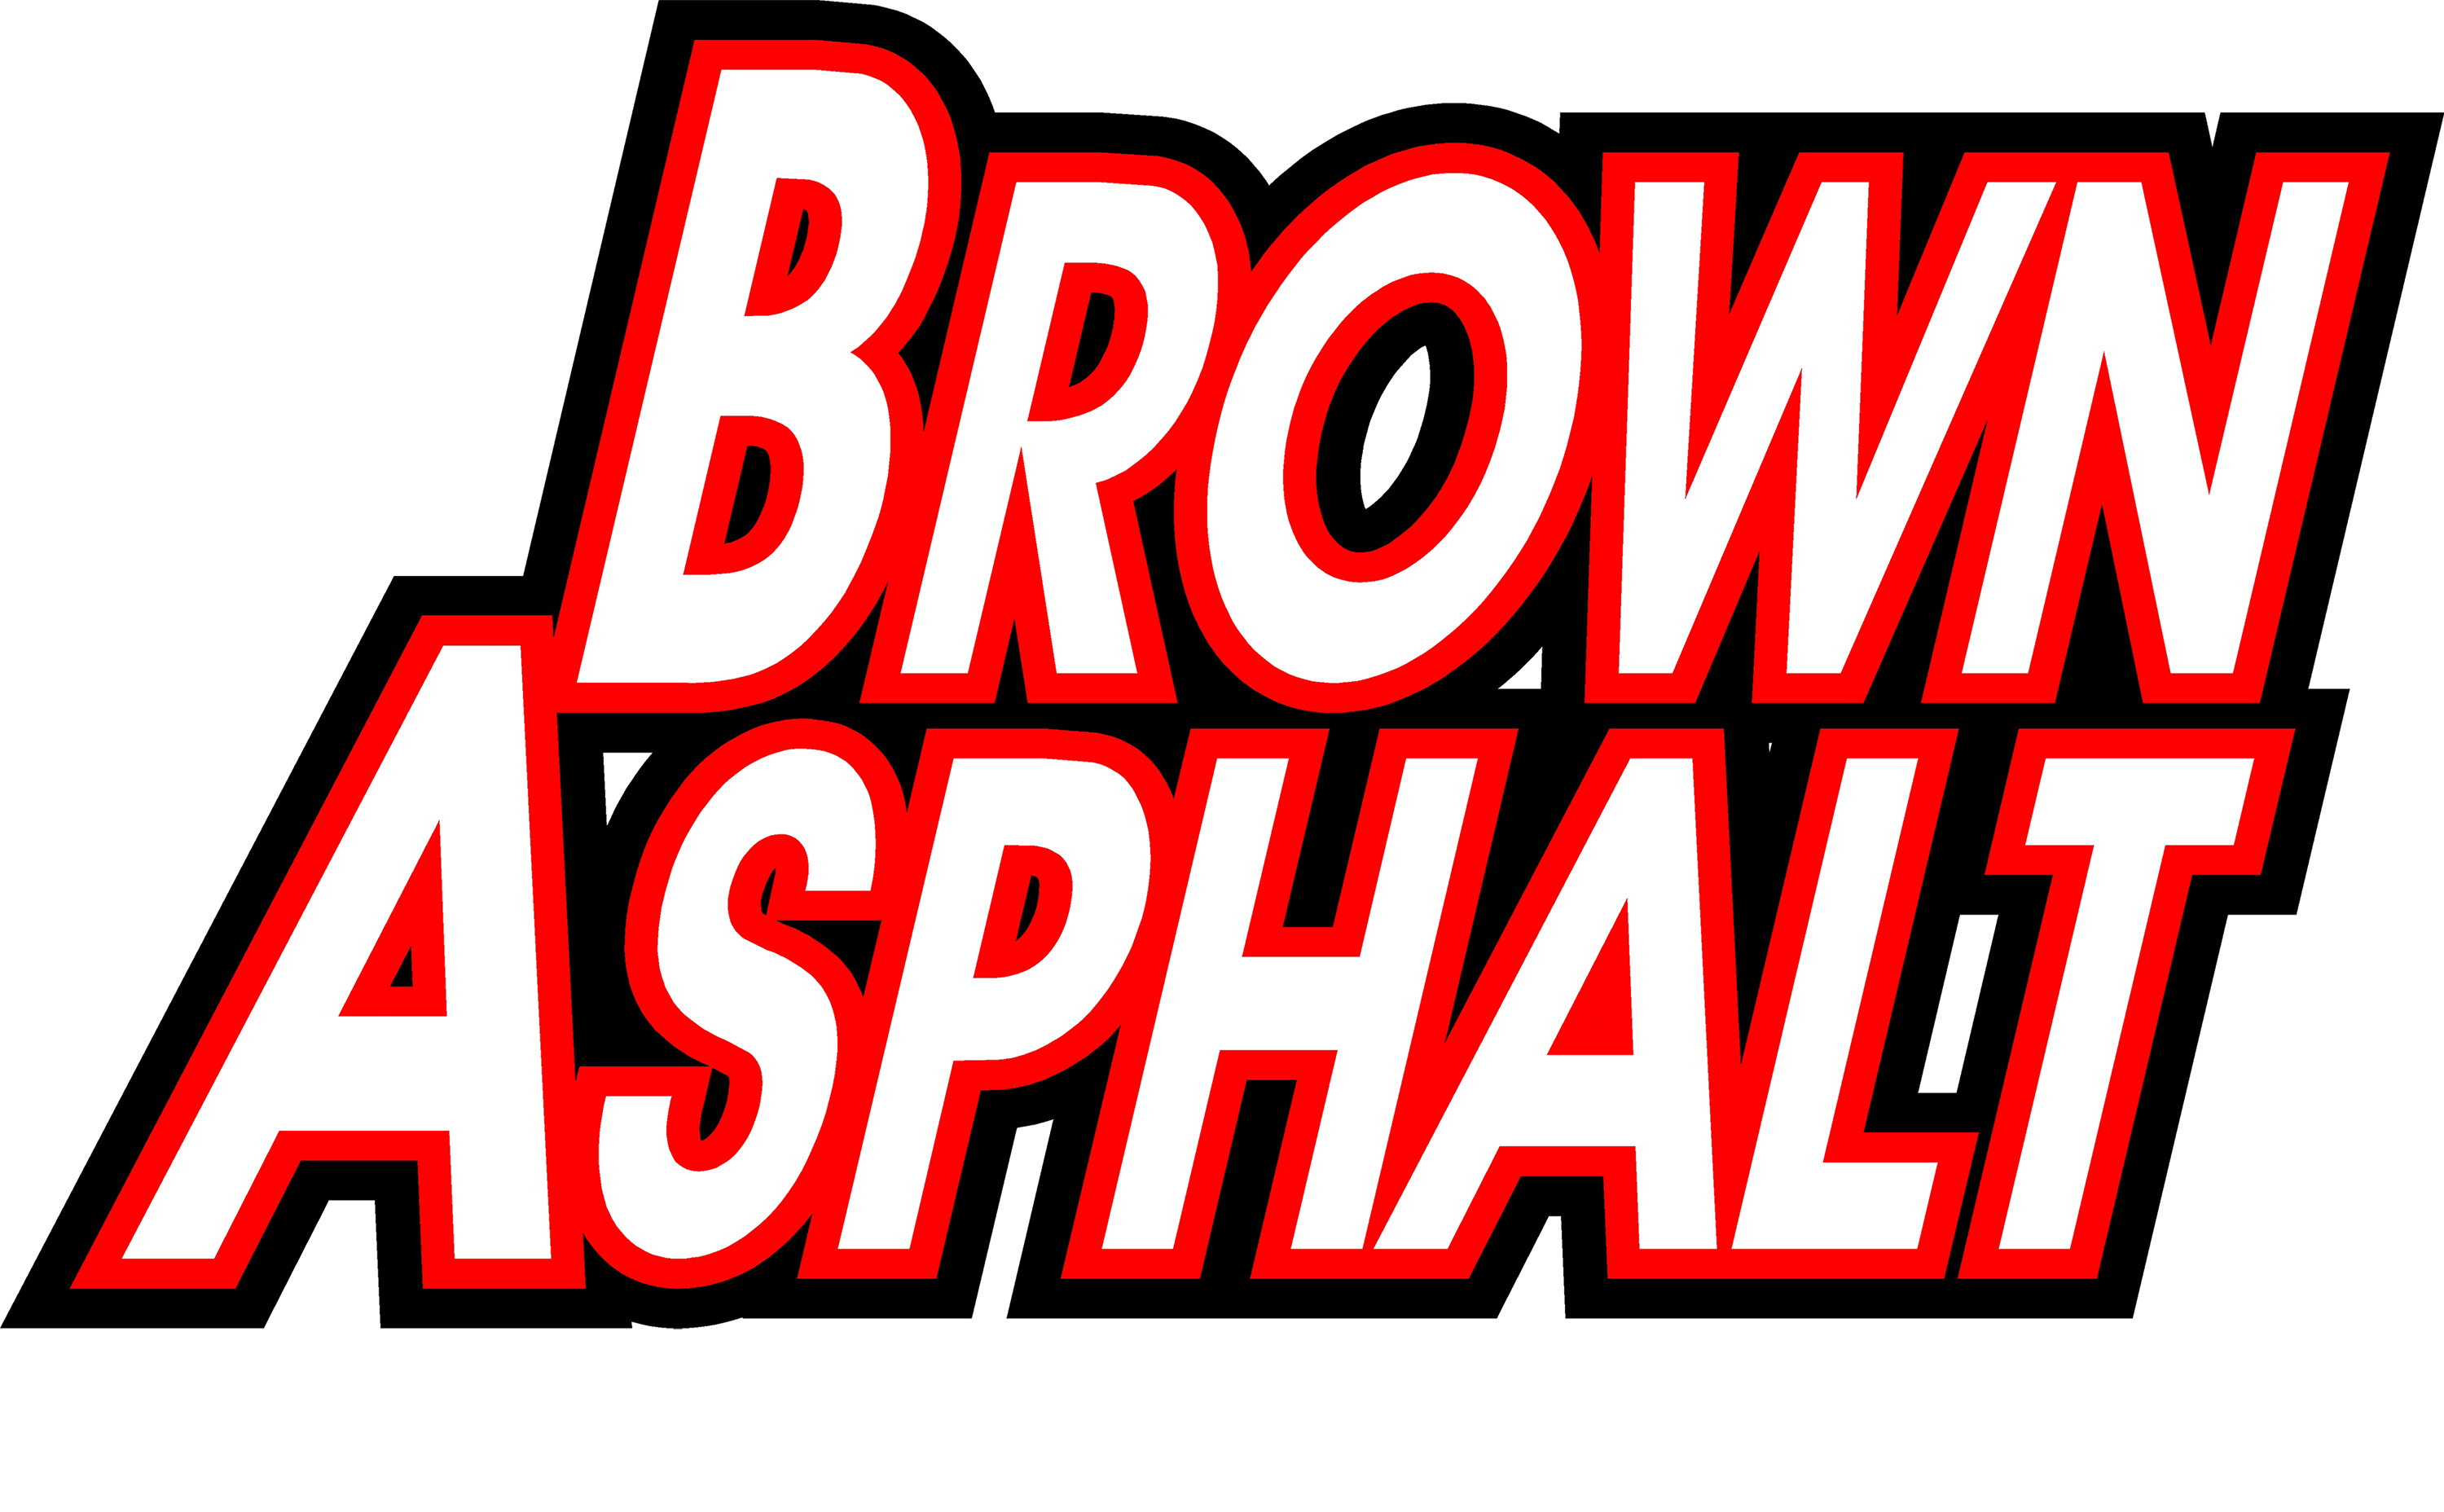 Brown Asphalt Paving Co., Inc.